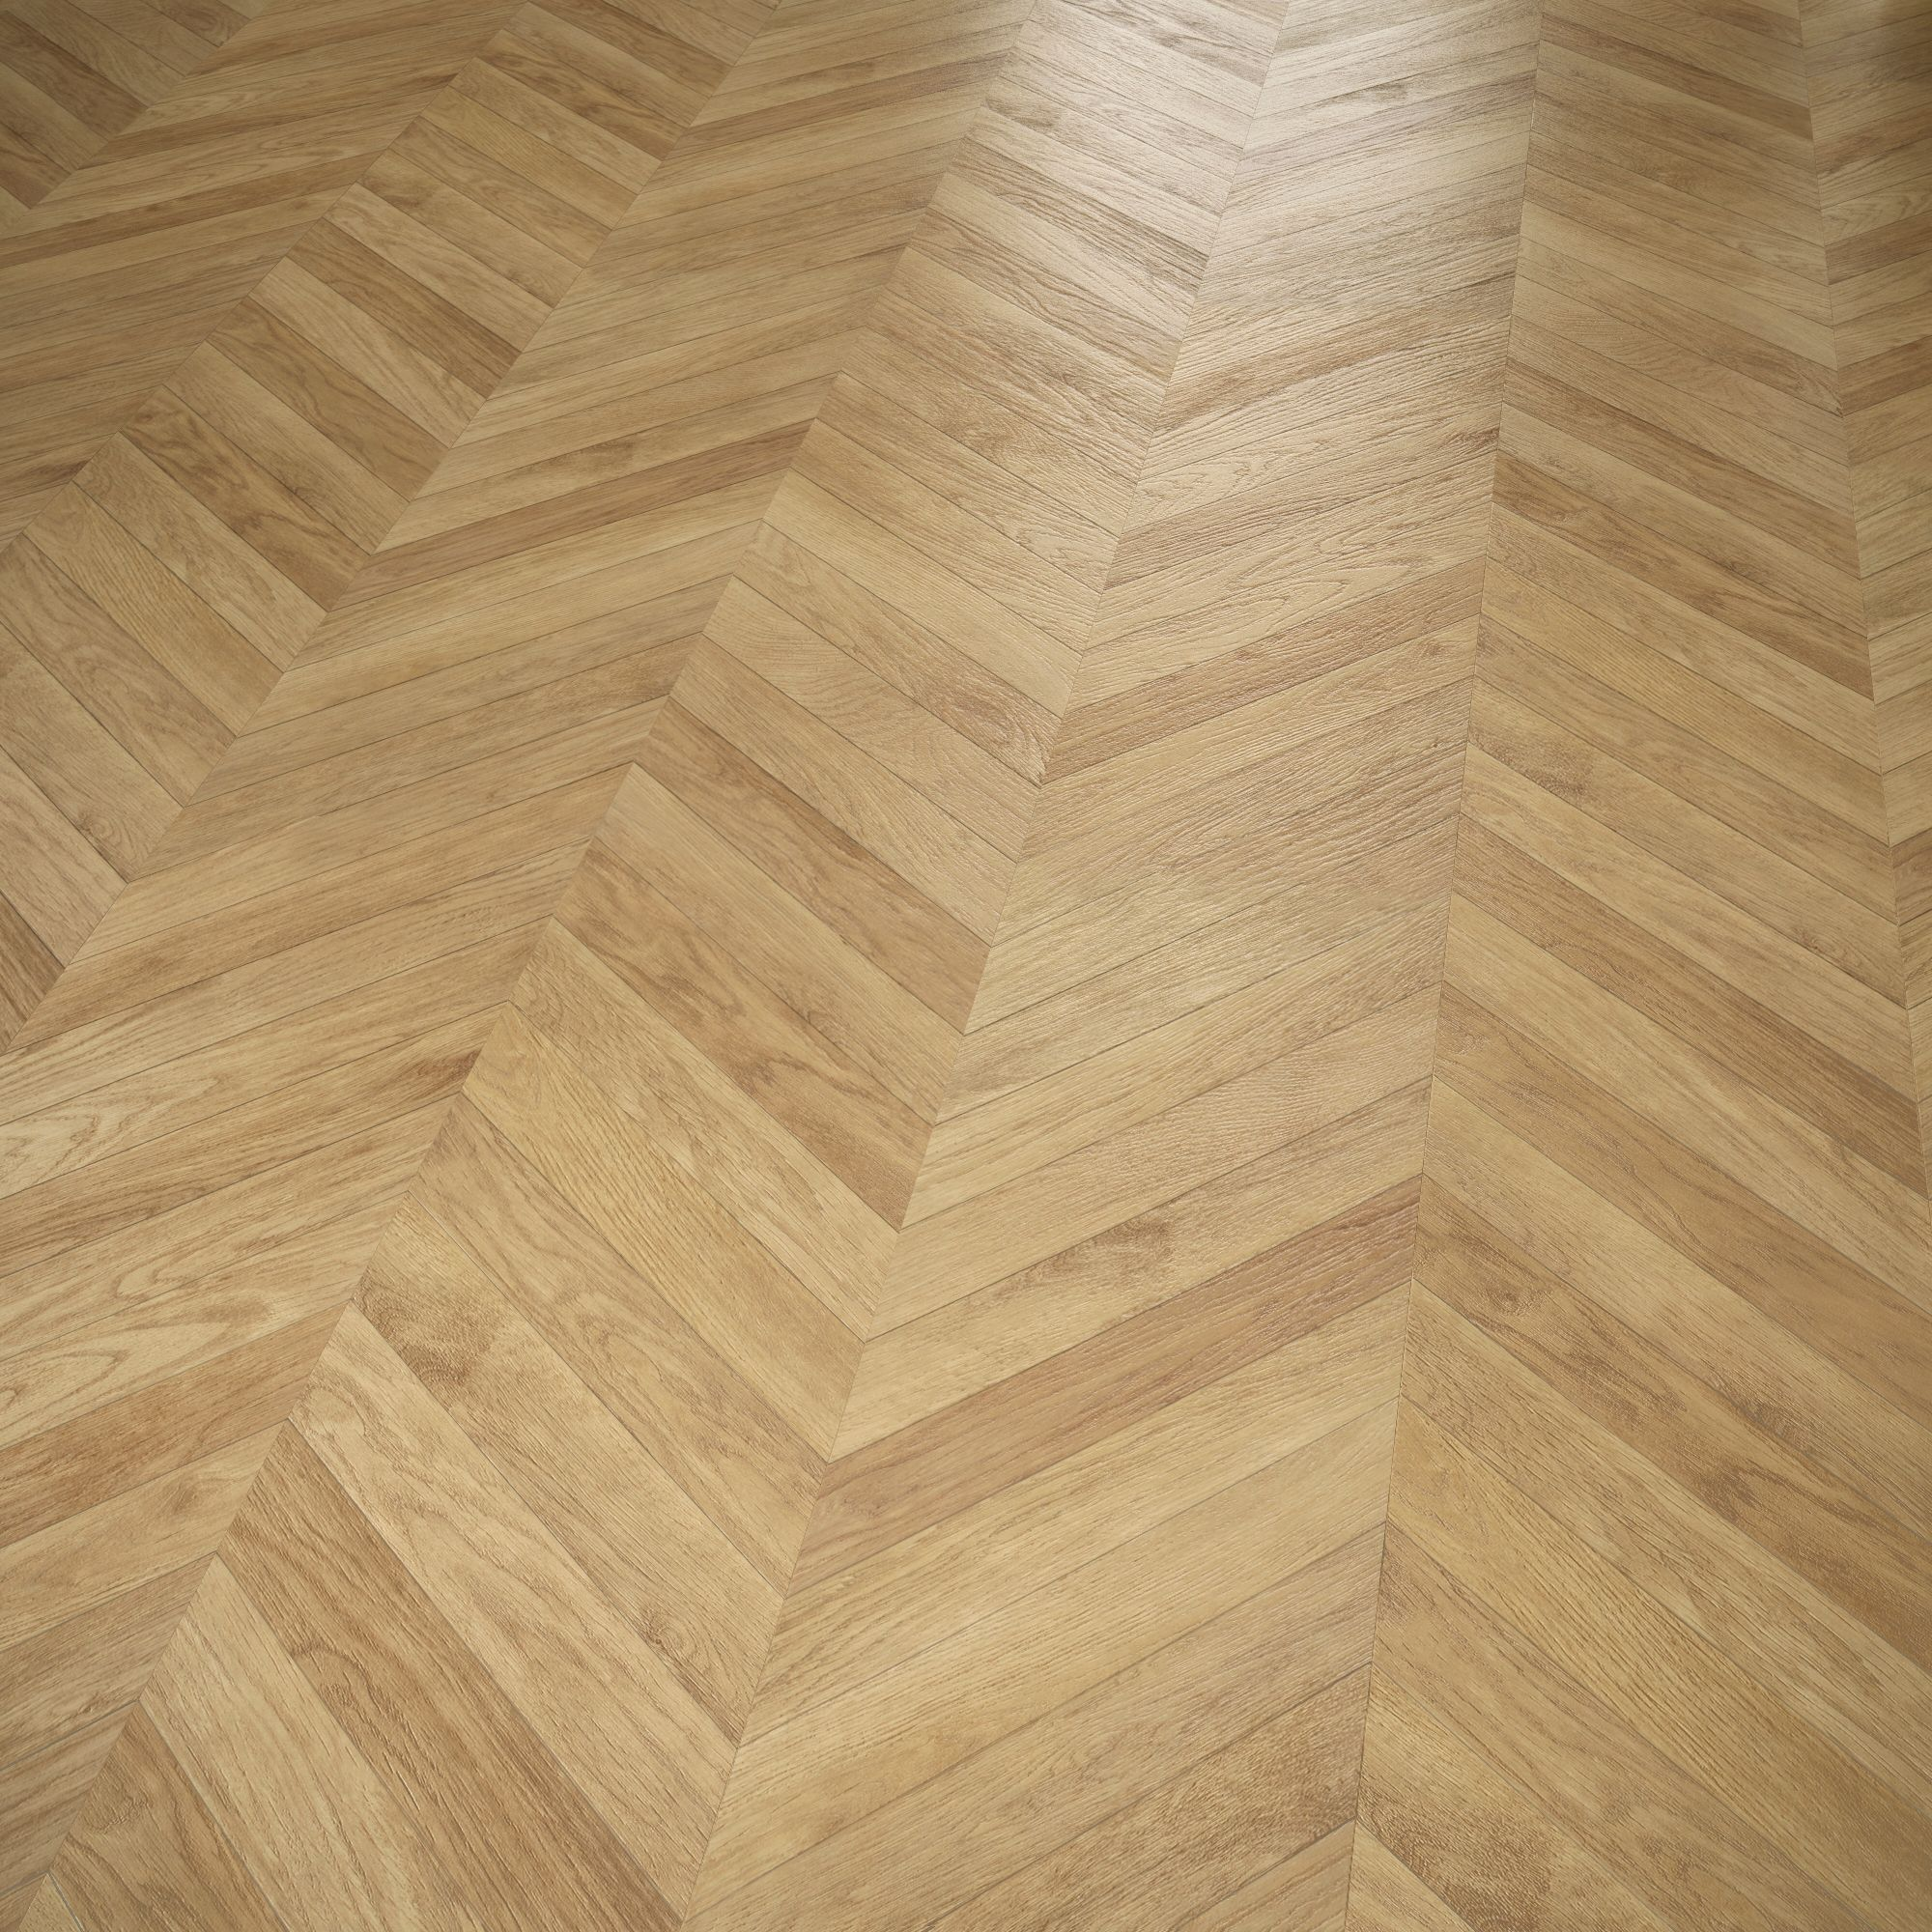 Alessano Herringbone oak effect Laminate flooring 1.39 m² Pack ...